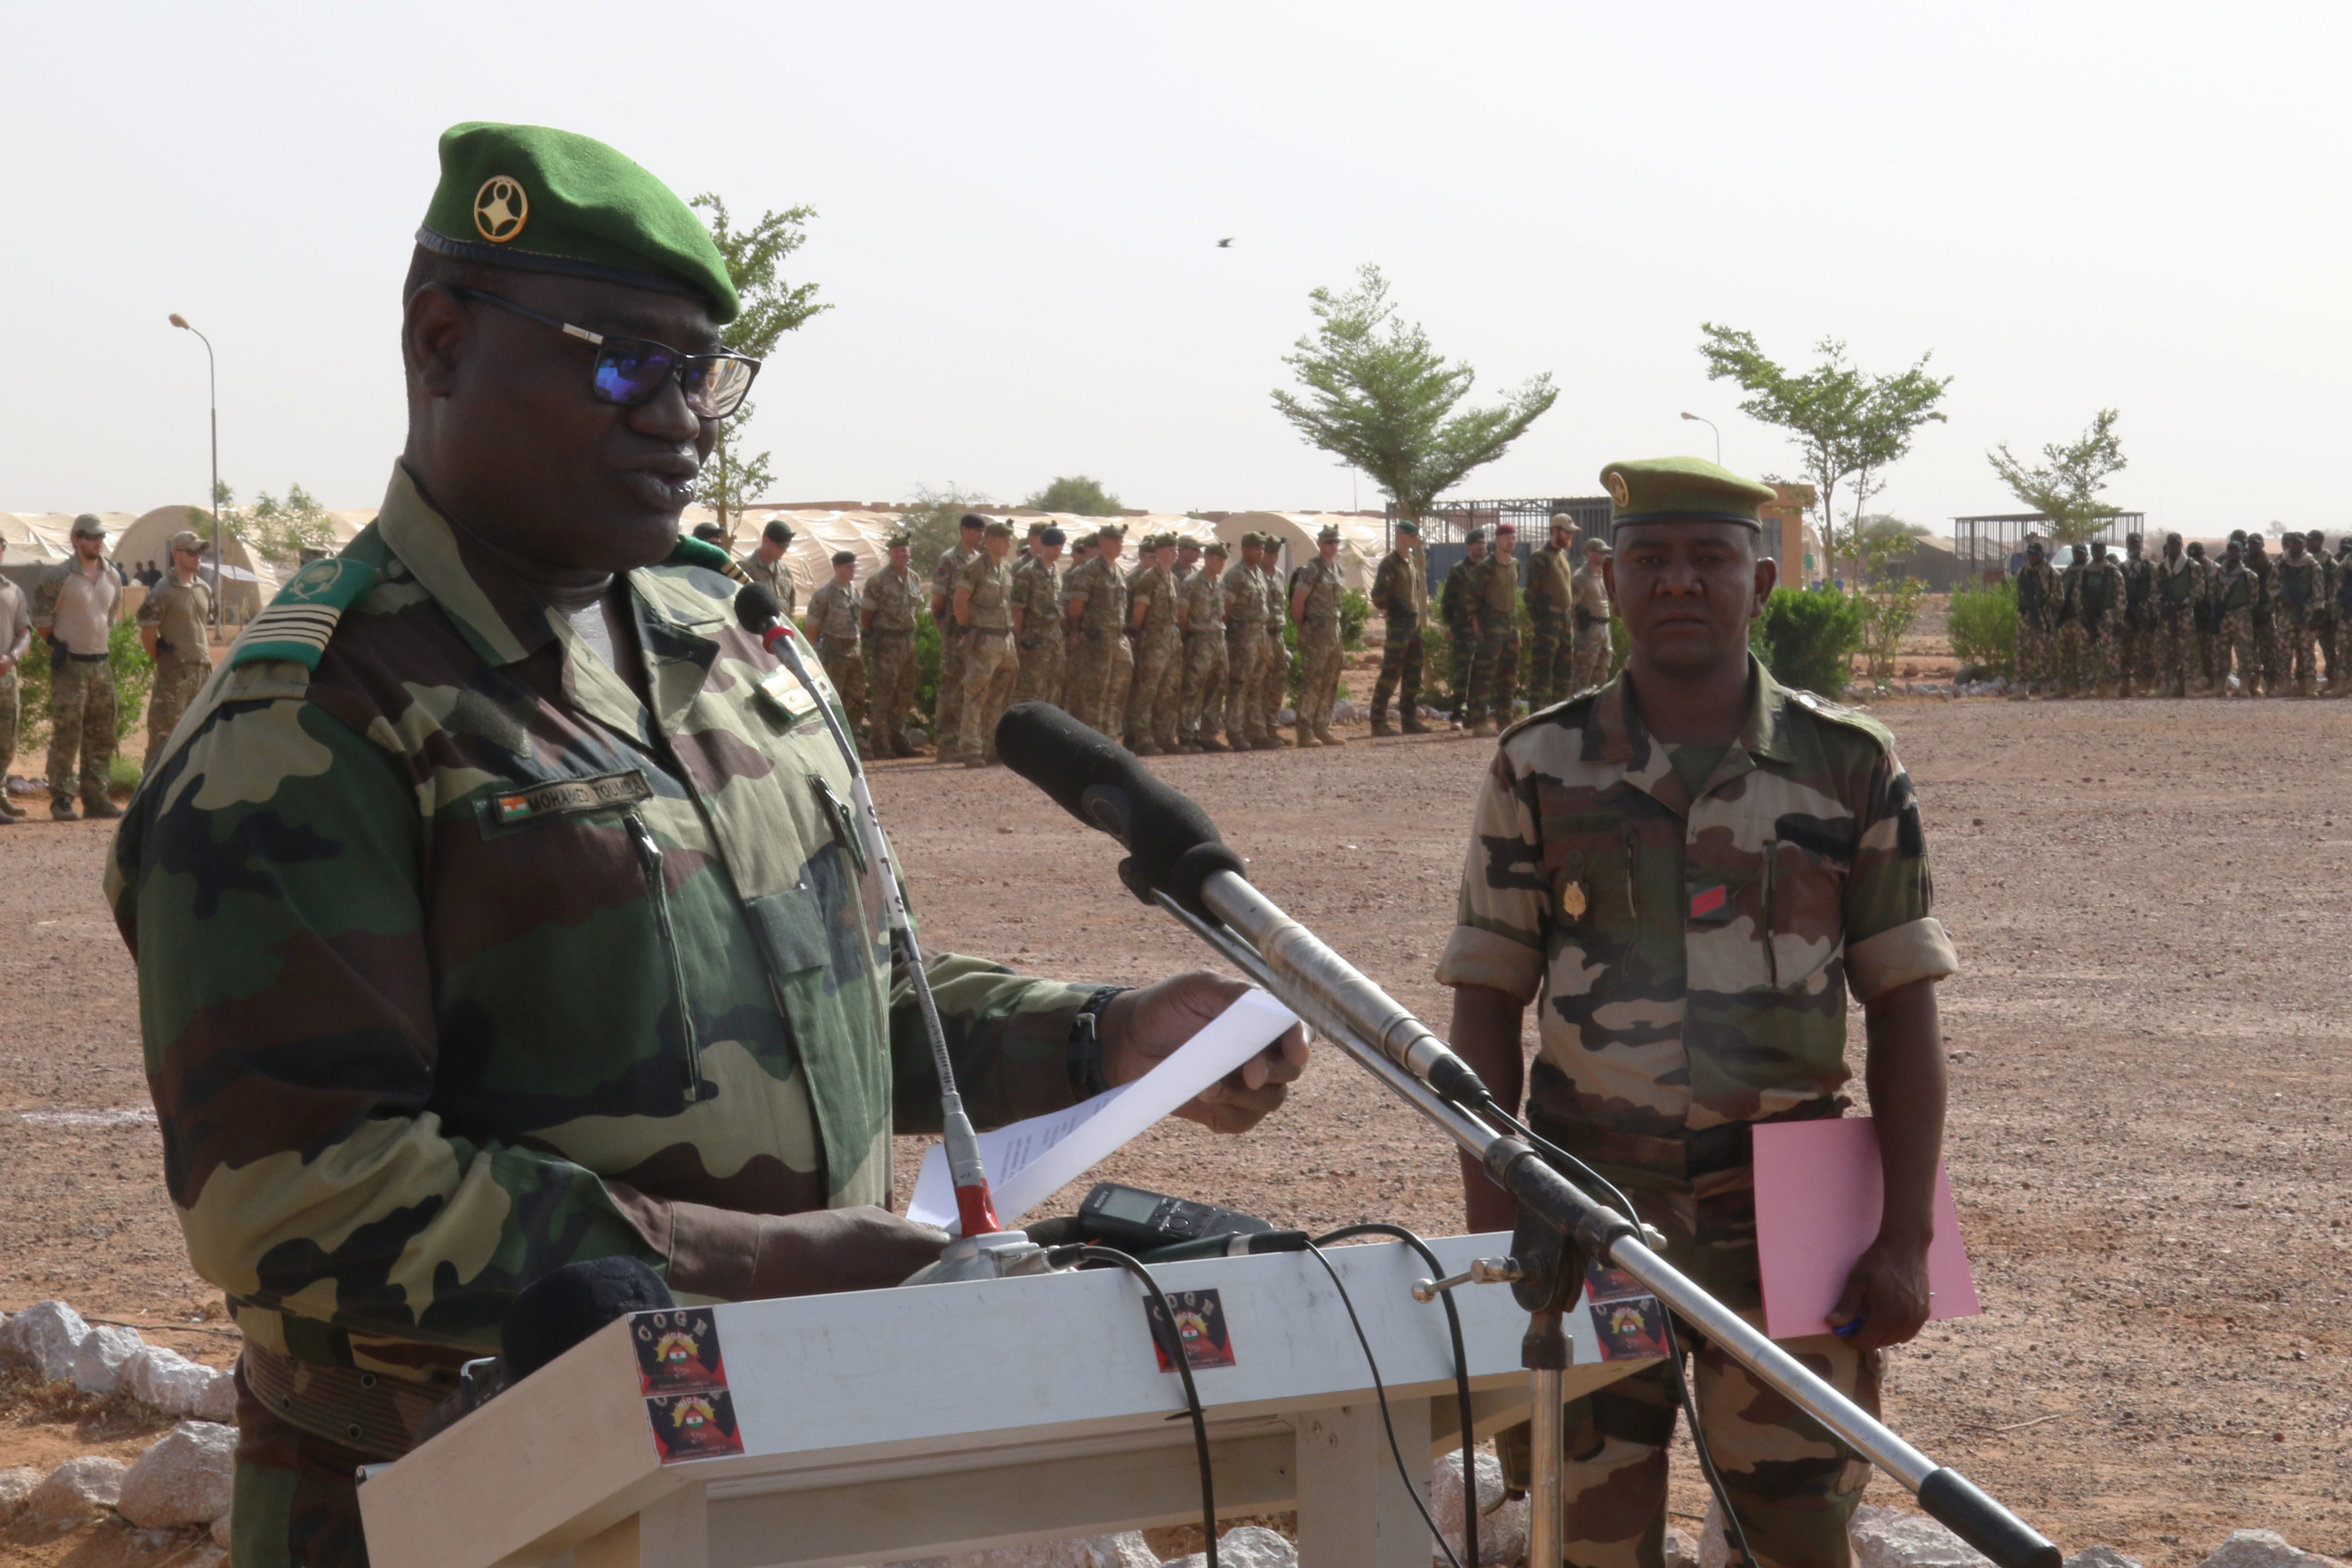 TAHOUA, Niger - Col. Mohamed Toumba, Zone 4 Commander, Forces Armees Nigeriennes, or FAN, gives a speech to the dignitaries who attended the Tahoua opening ceremony for Flintlock 2018 in Tahoua, Niger, April 11, 2018. Flintlock 2018, hosted by Niger, with key outstations at Burkina Faso and Senegal, is designed to strengthen the ability of key partner nations in the region to counter violent extremist organizations, protect their borders, and provide security for their people.